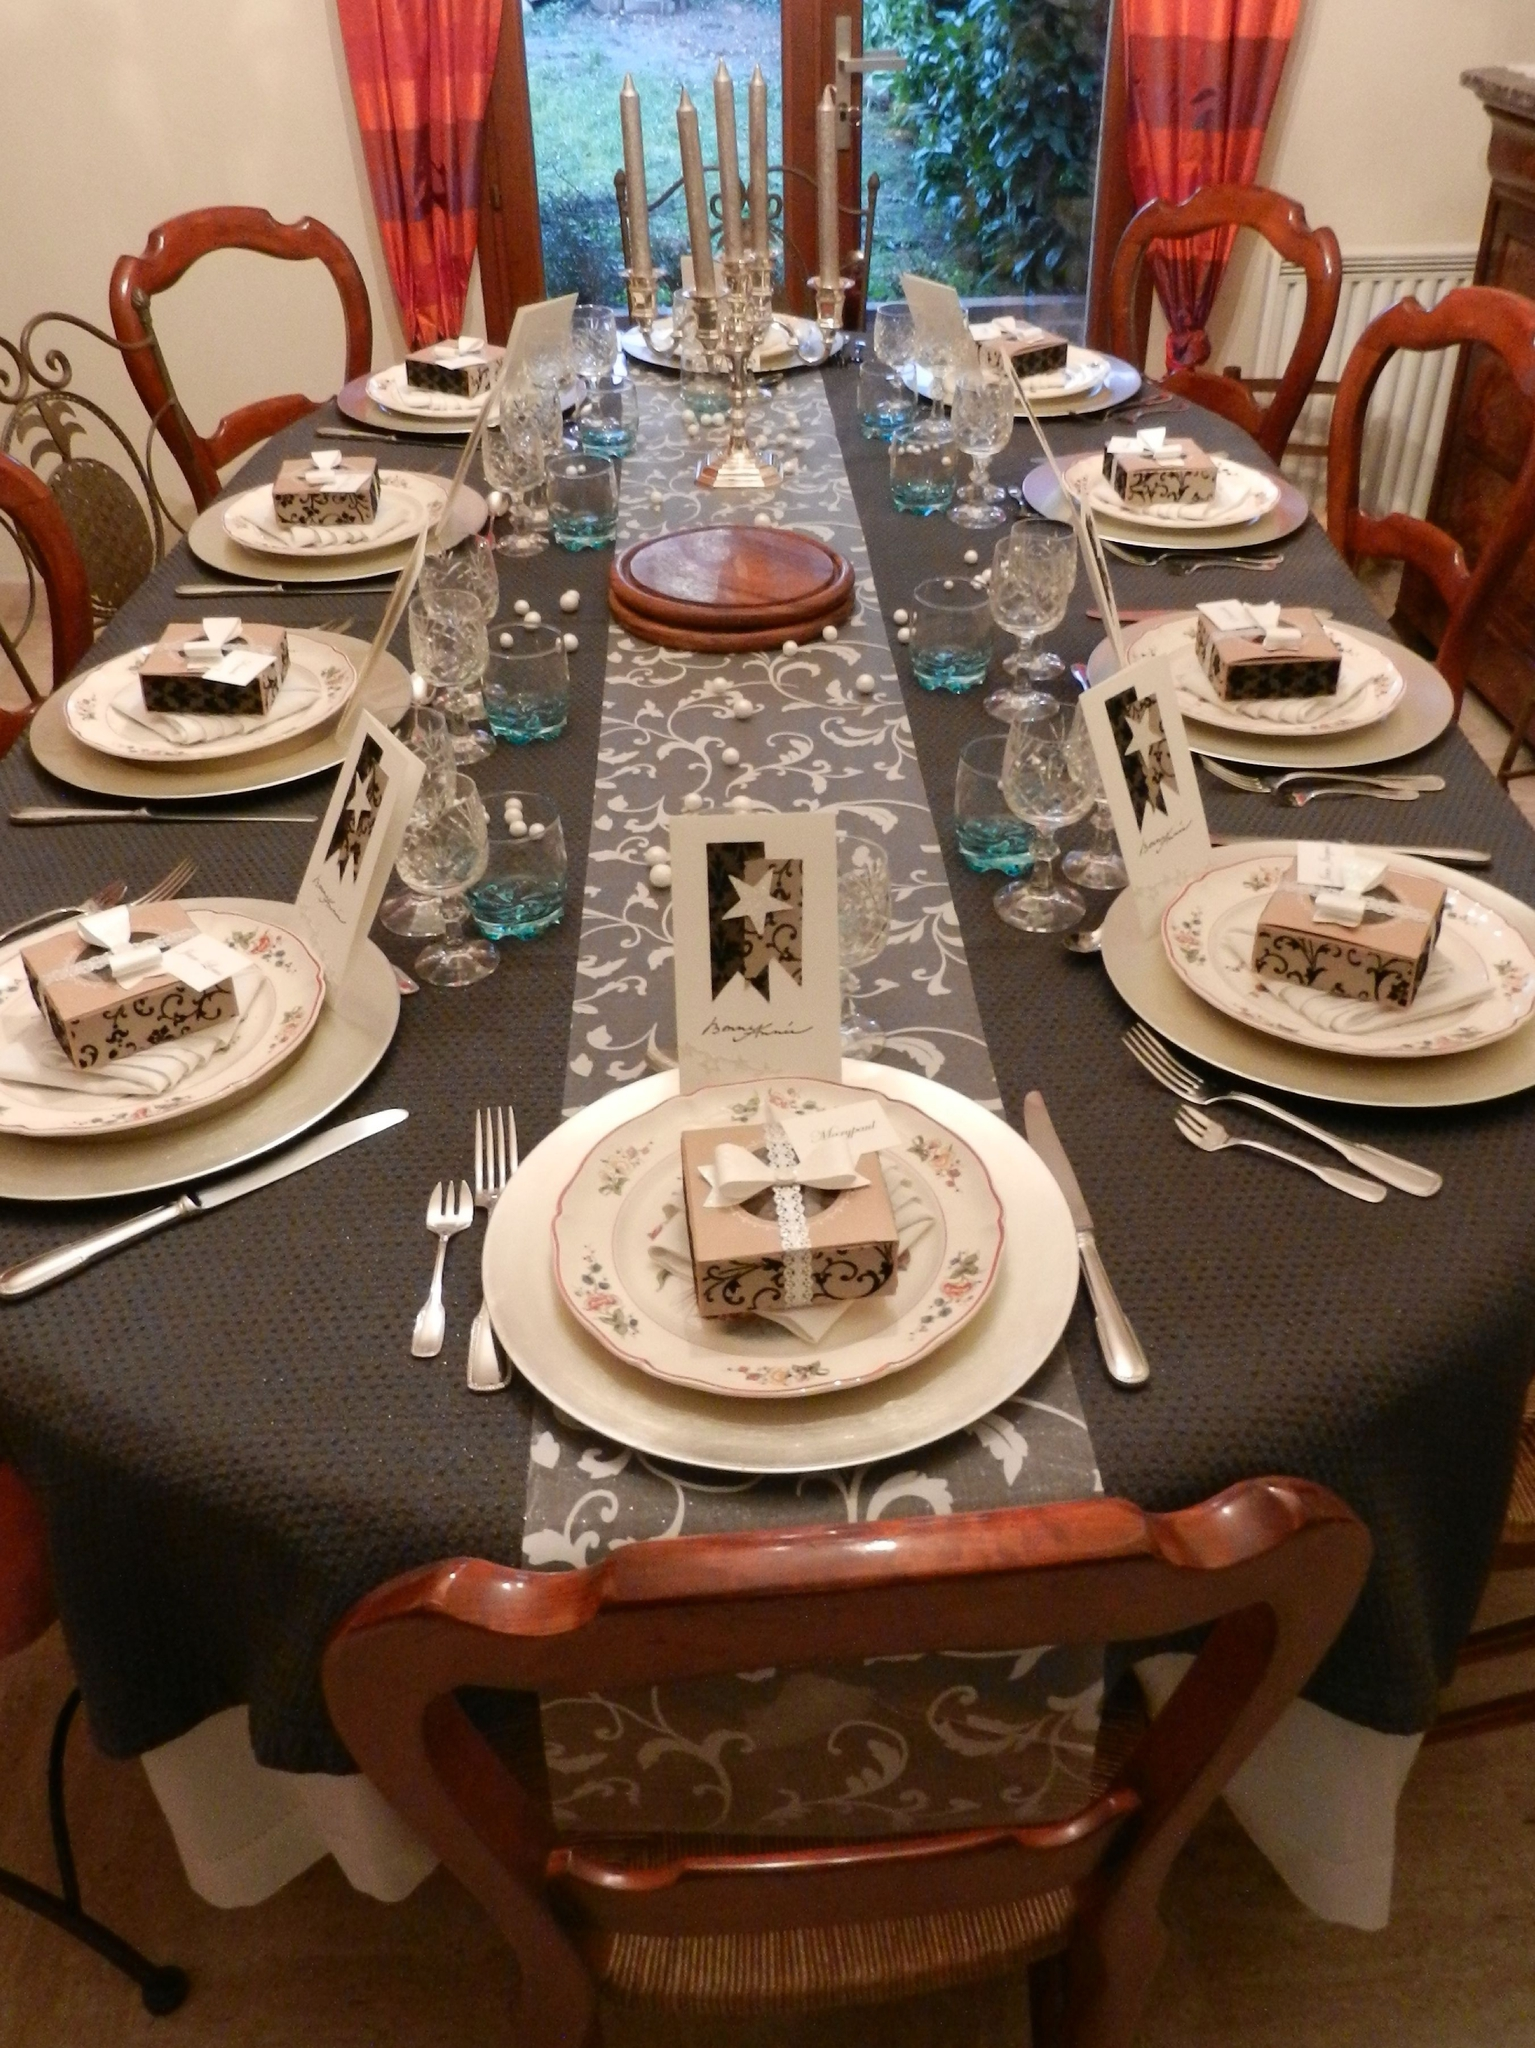 Beau decoration table jour de l an 11 nouvel an 2014 for Decoration reveillon nouvel an